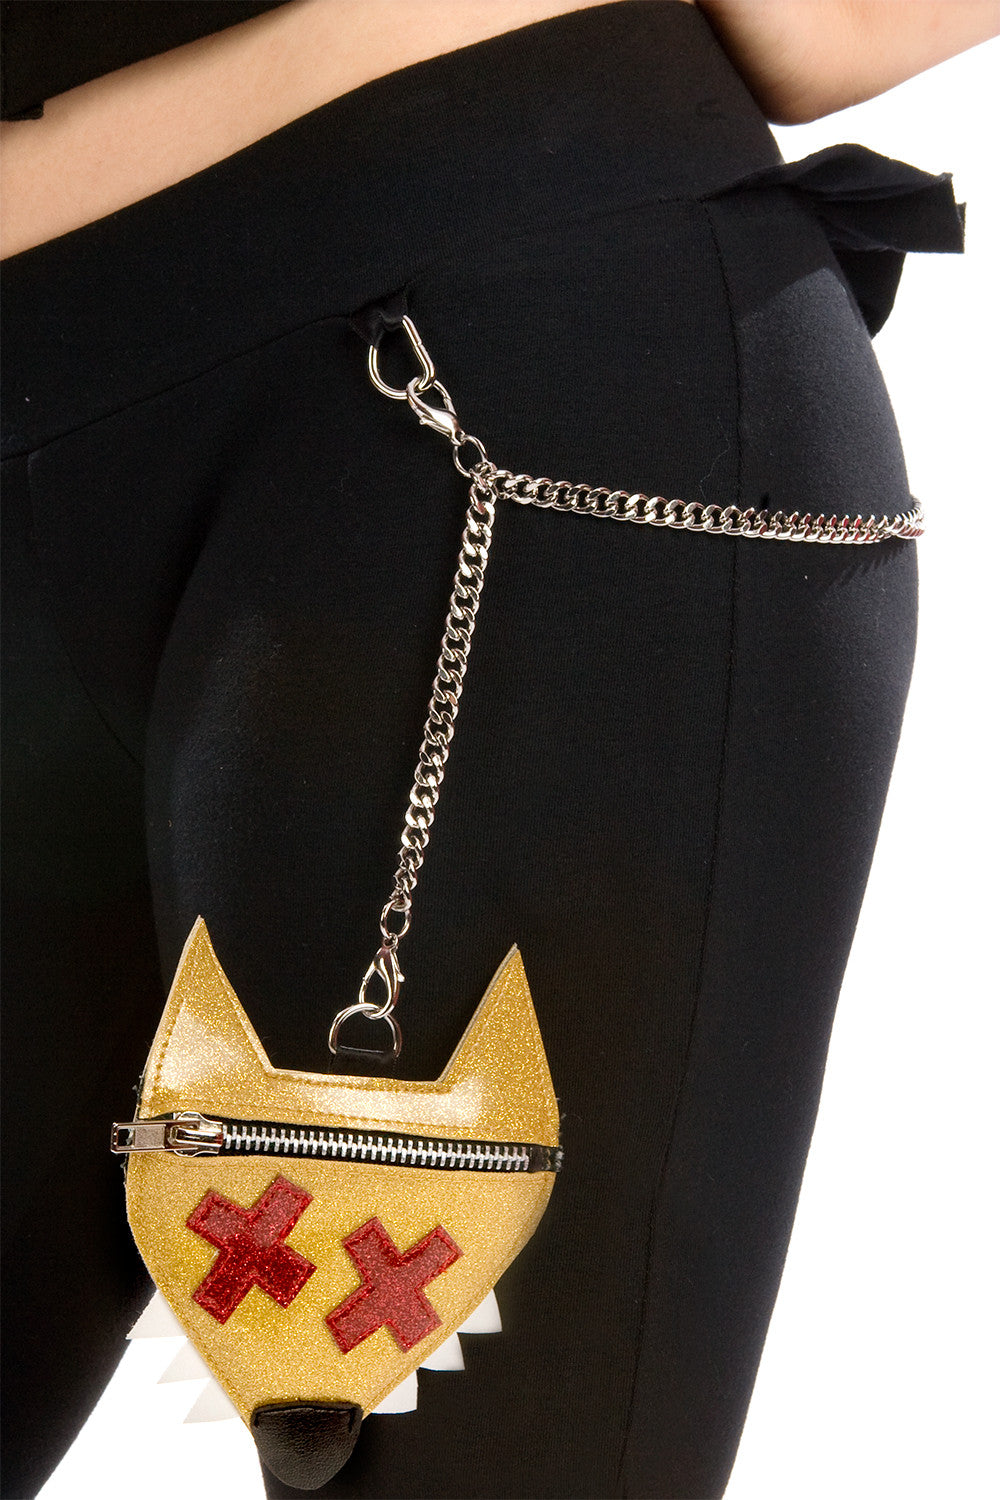 Red Riding Pants with Purse & Chain